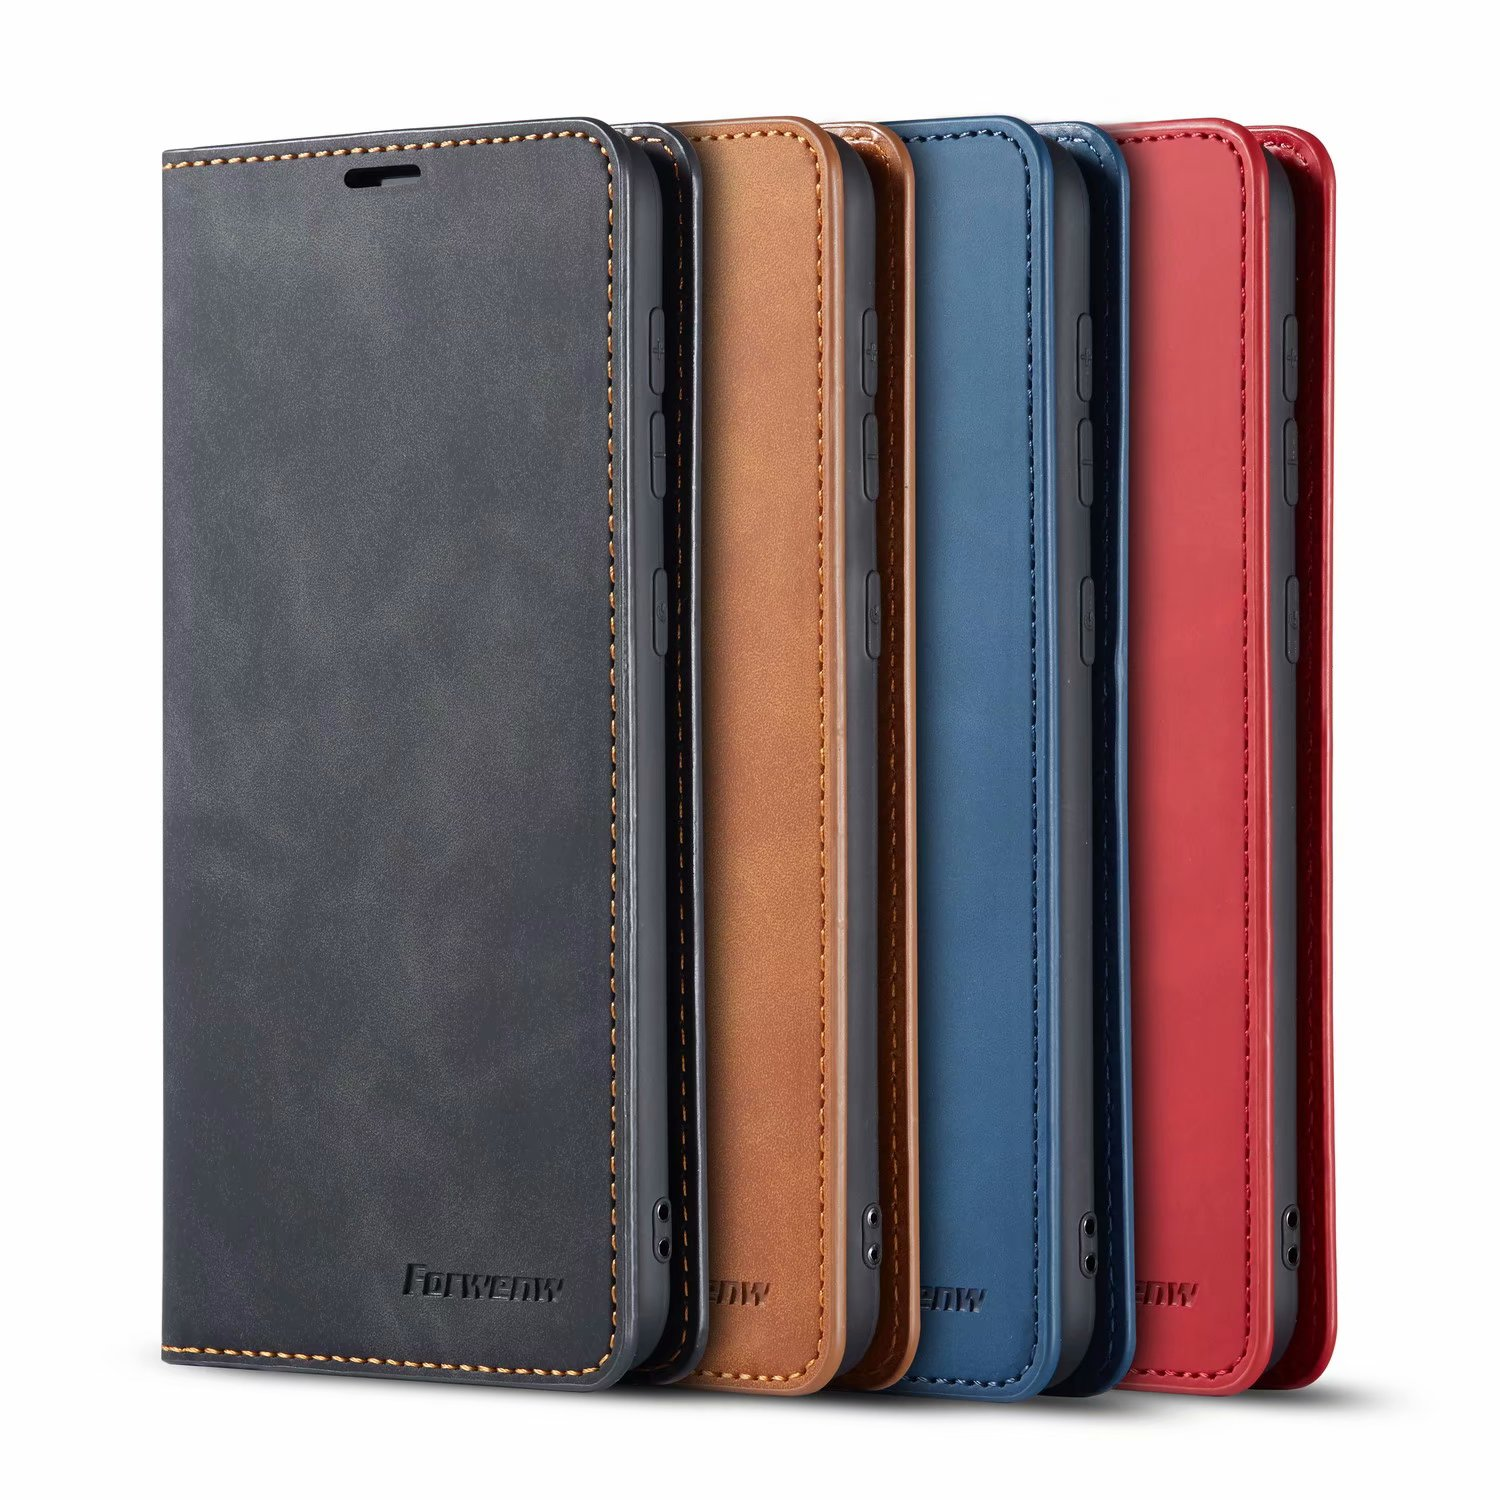 Forwenw Retro Leather Flip Card Wallet Case For Samsung  Galaxy S20  Plus S20 Ultra Magnetic Stand Flip Cover Shockproof